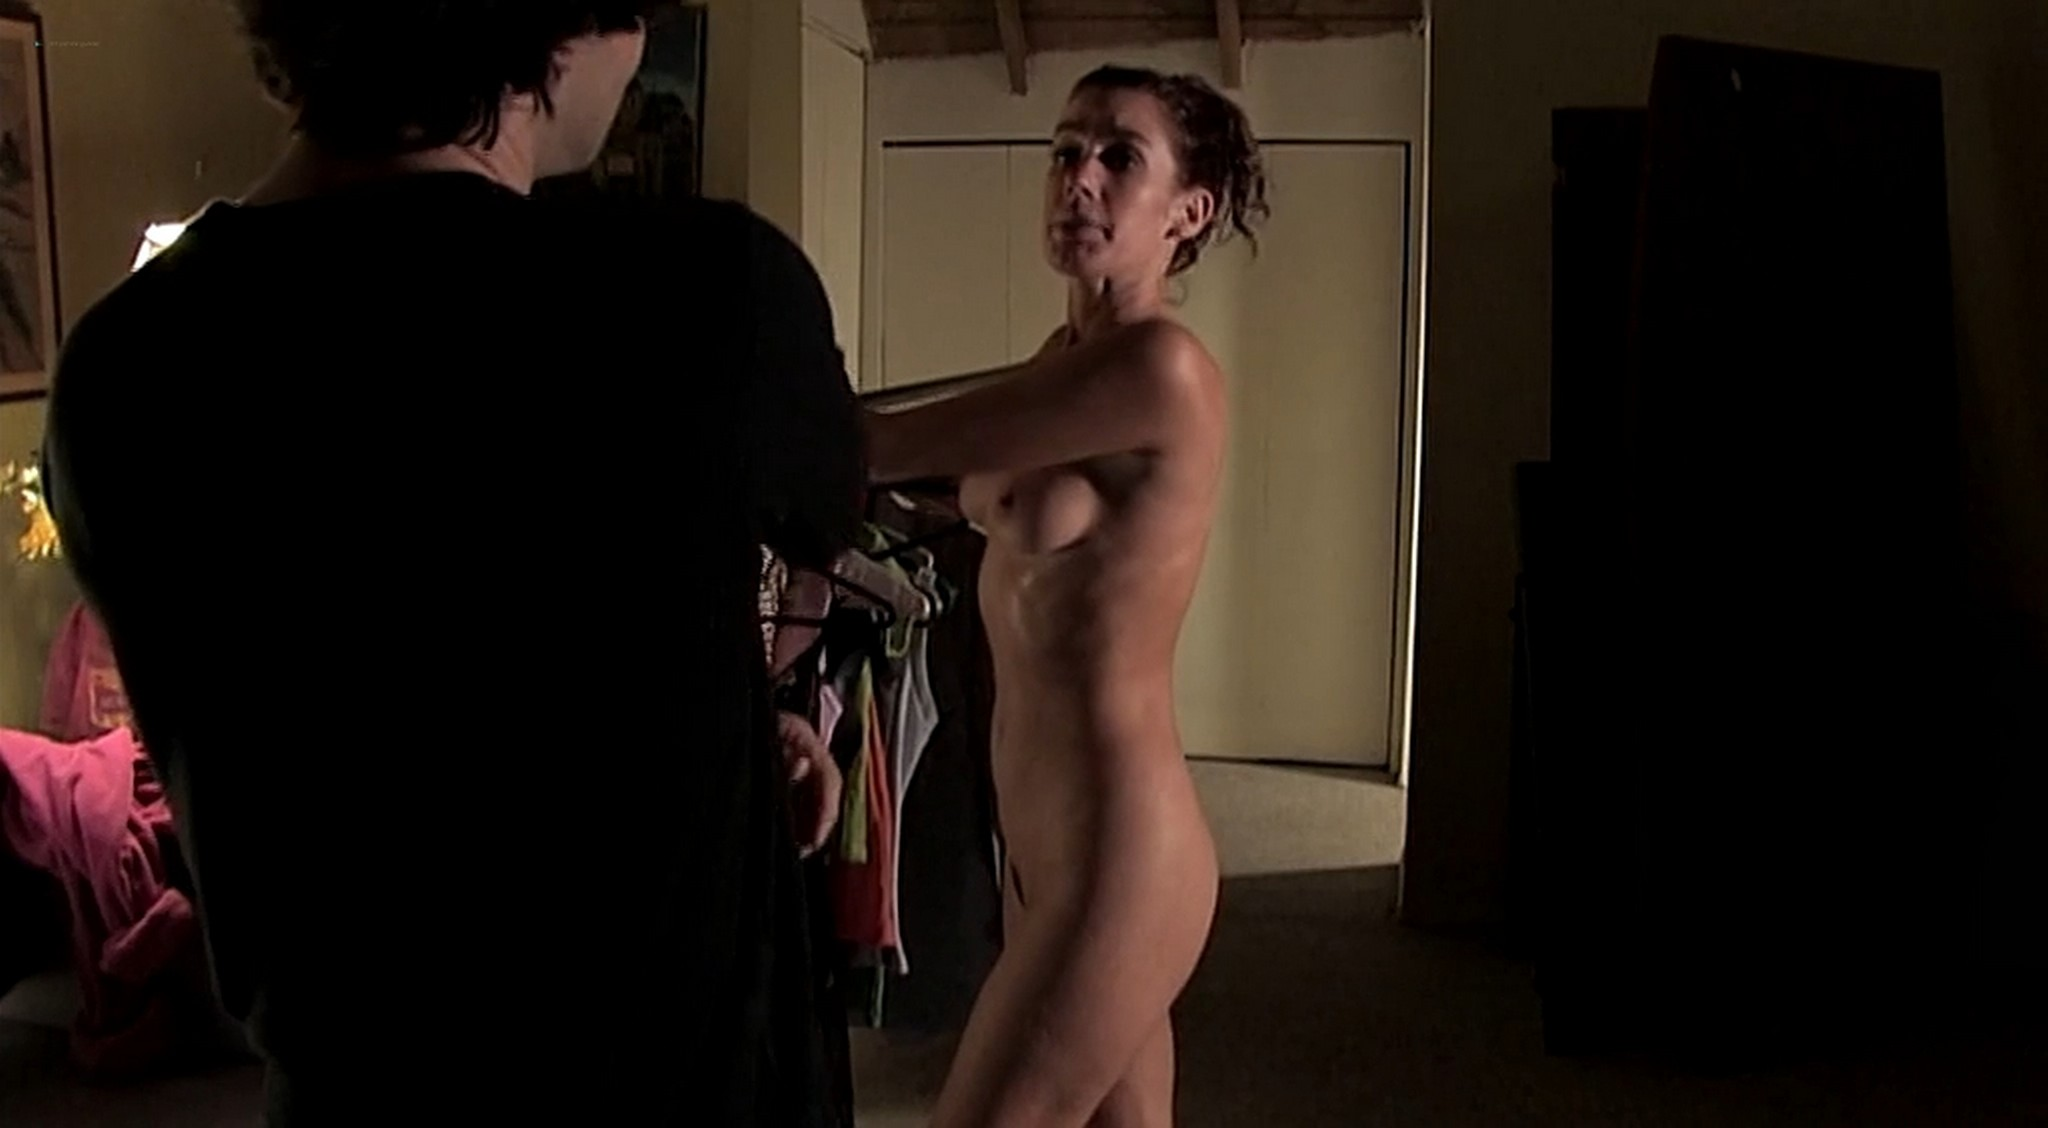 Victoria De Mare nude Roxy DeVille and others nude sex too Bio Slime 2010 DVDRip 5